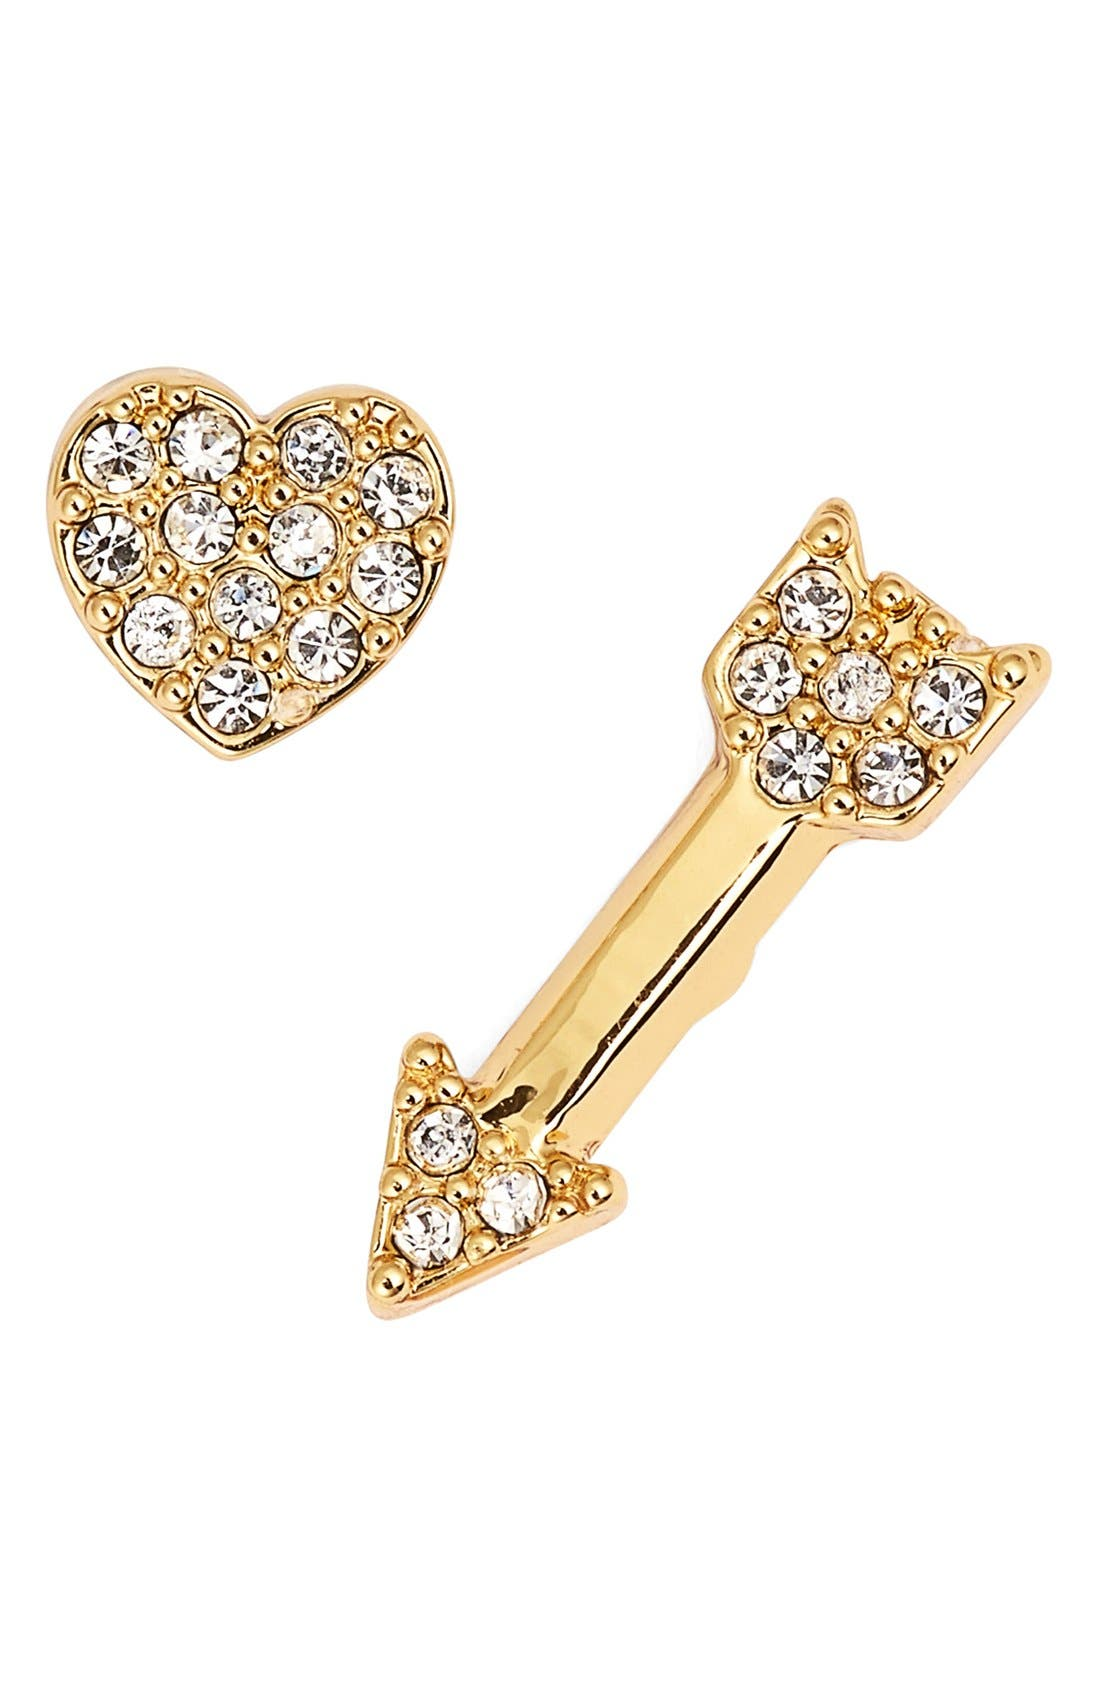 KATE SPADE NEW YORK, 'love list' heart & arrow mismatched stud earrings, Main thumbnail 1, color, 100